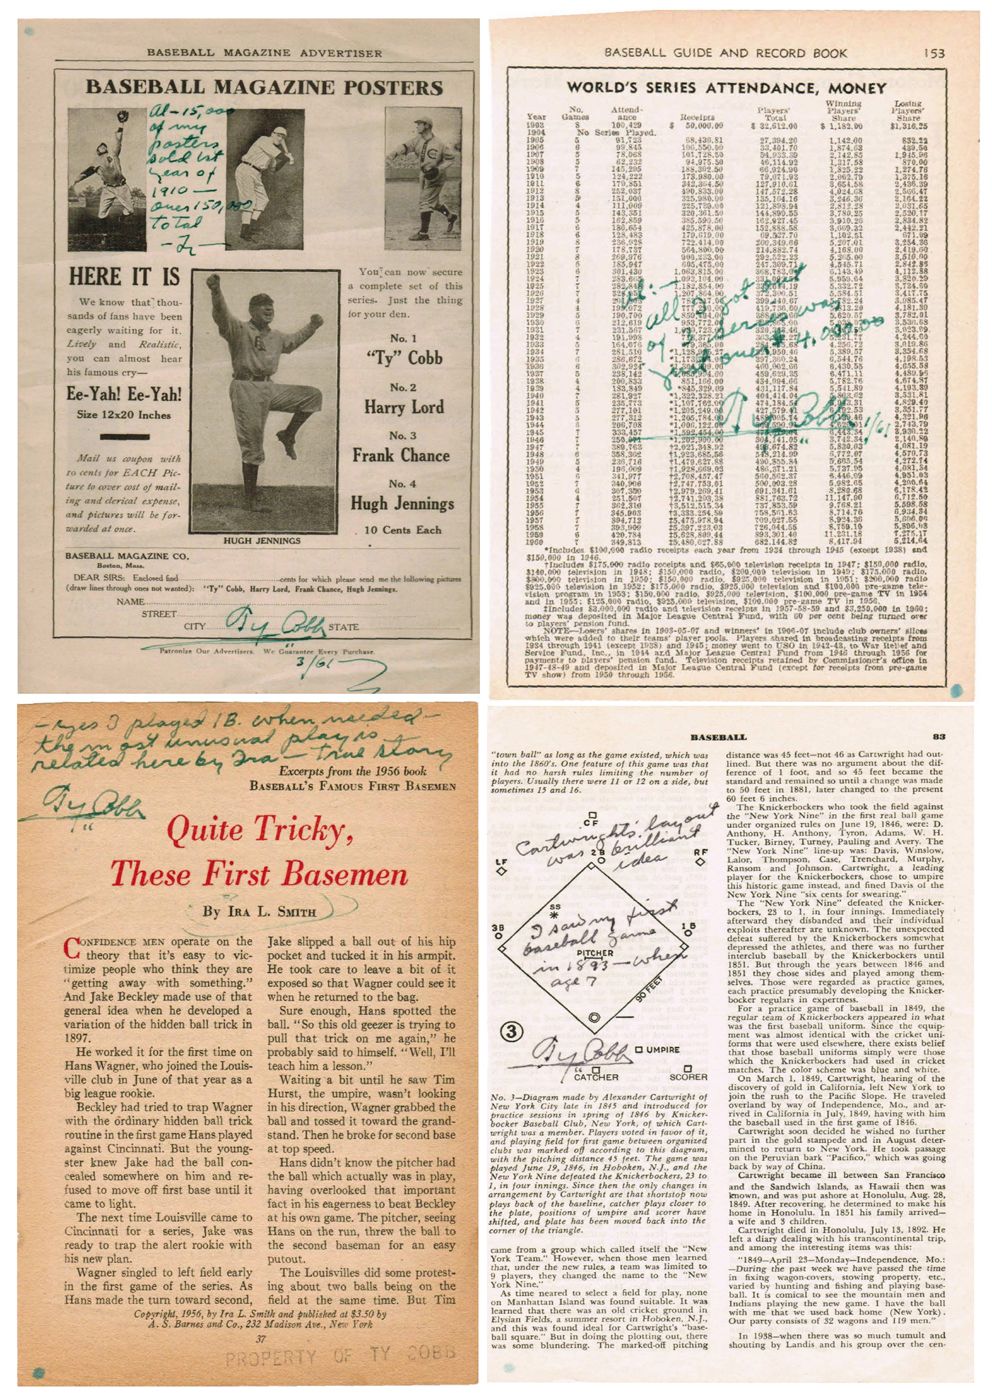 Four examples of the dozens of baseball-related pages from publications onto which Al Stump forged Ty Cobb's autograph and comments attributed to Ty Cobb. These four were again offered at auction in May 2009 but withdrawn when experts notified the auction service that they were forgeries.